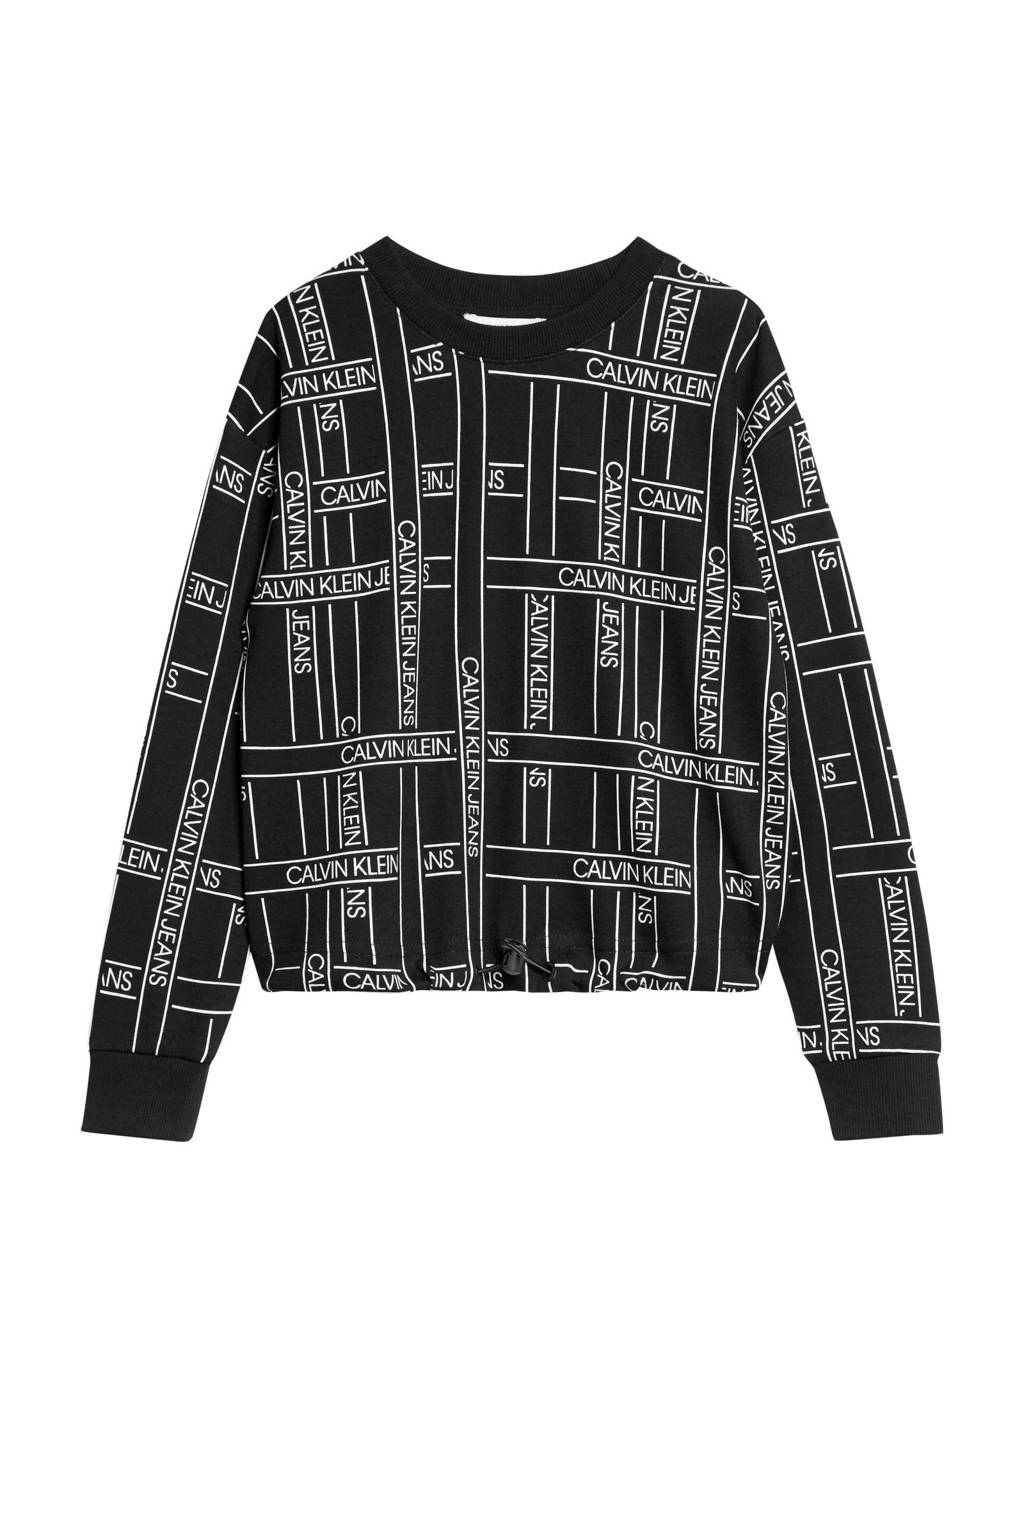 CALVIN KLEIN JEANS sweater met all over print zwart/wit, Zwart/wit